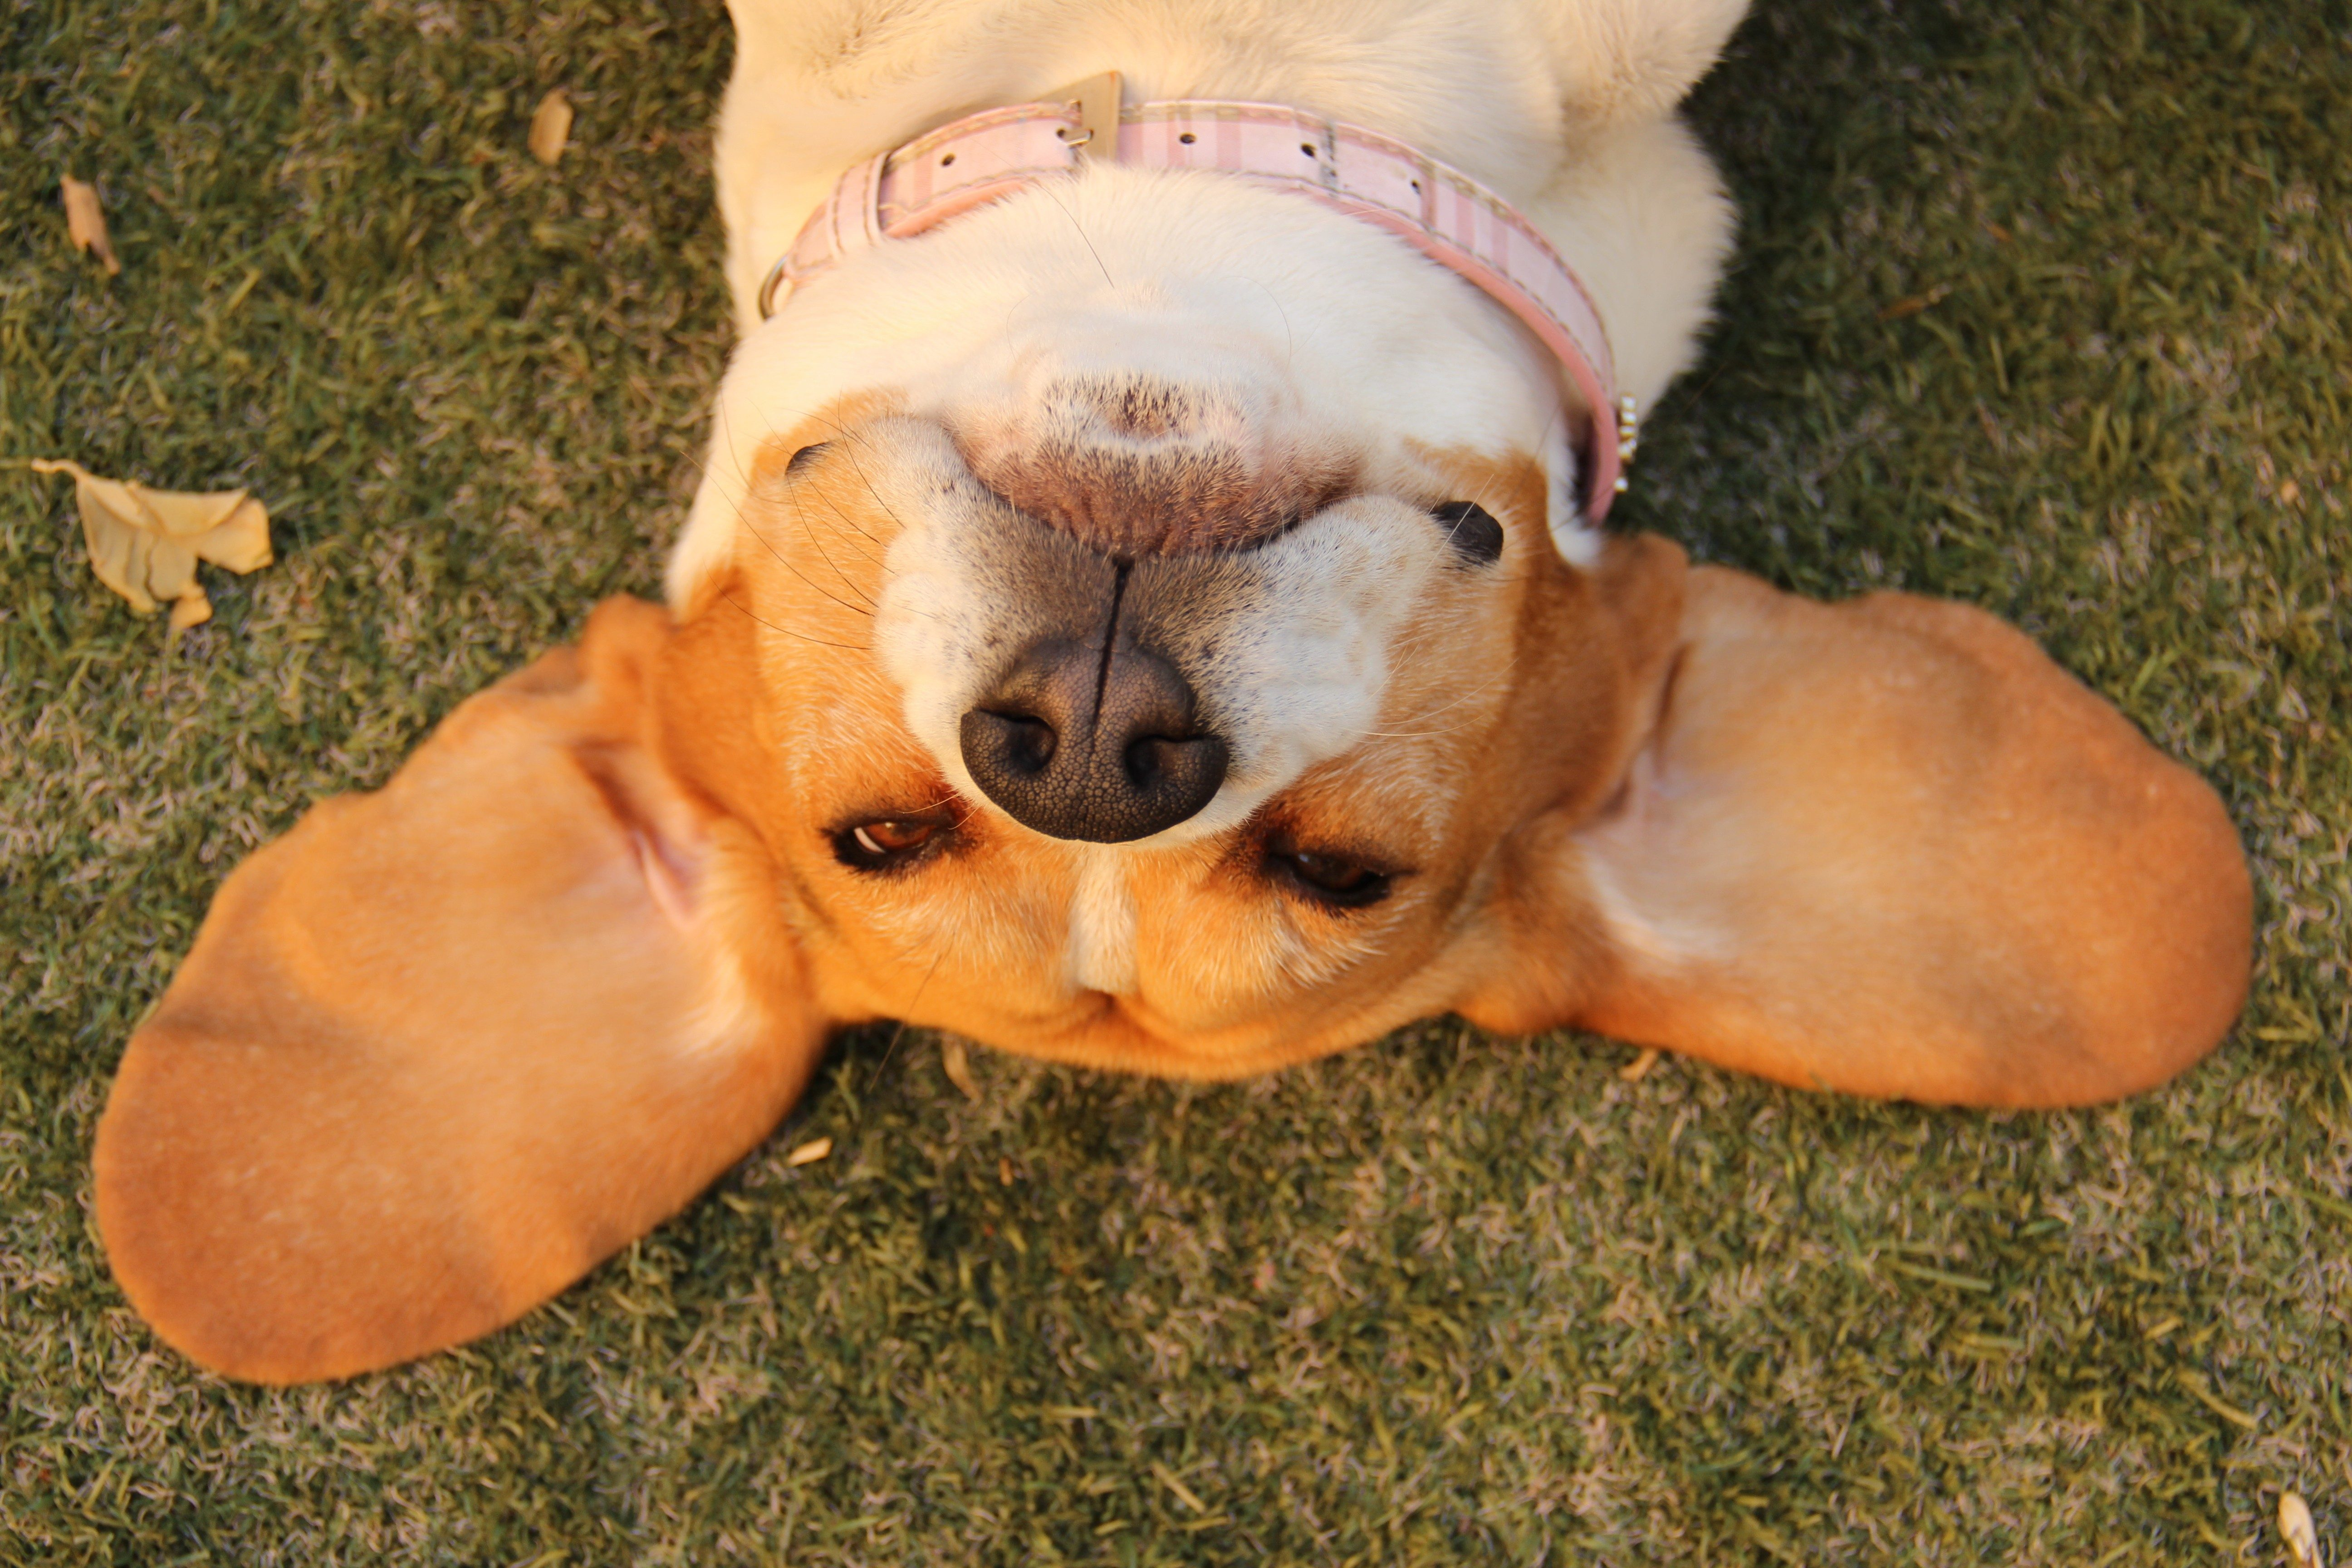 Signs Your Dog Could Have an Ear Infection | Reader's Digest